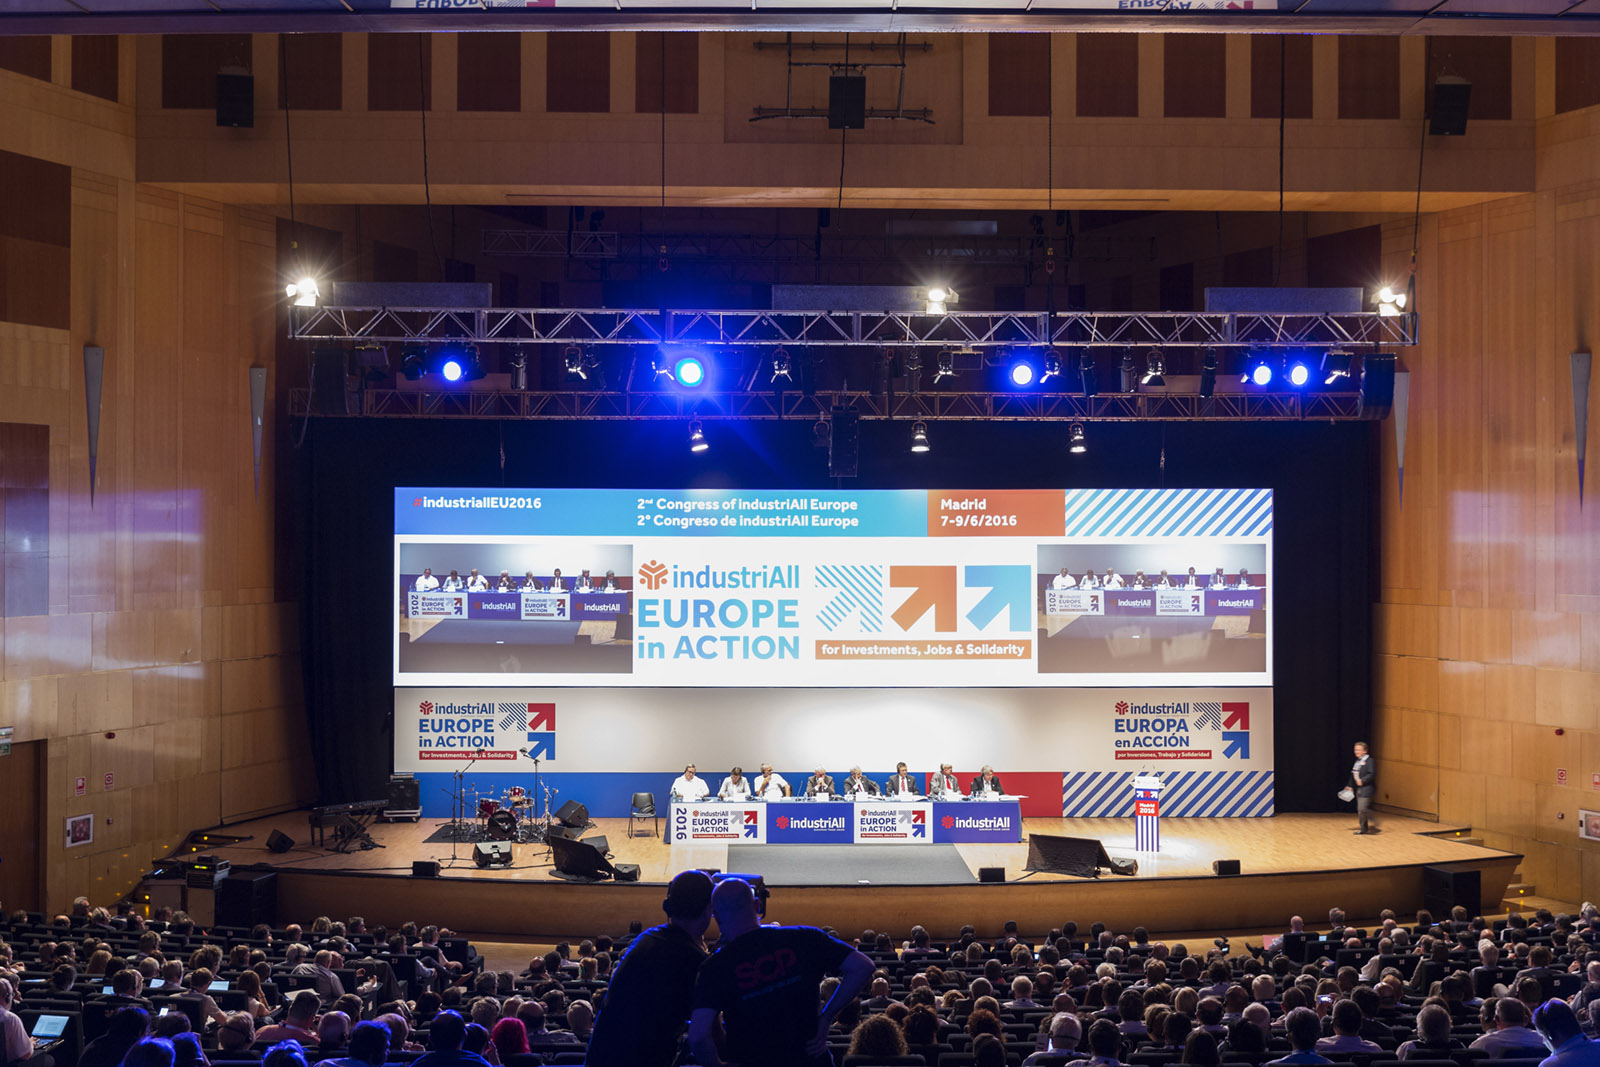 event conference photographer Madrid Spain 1057.JPG